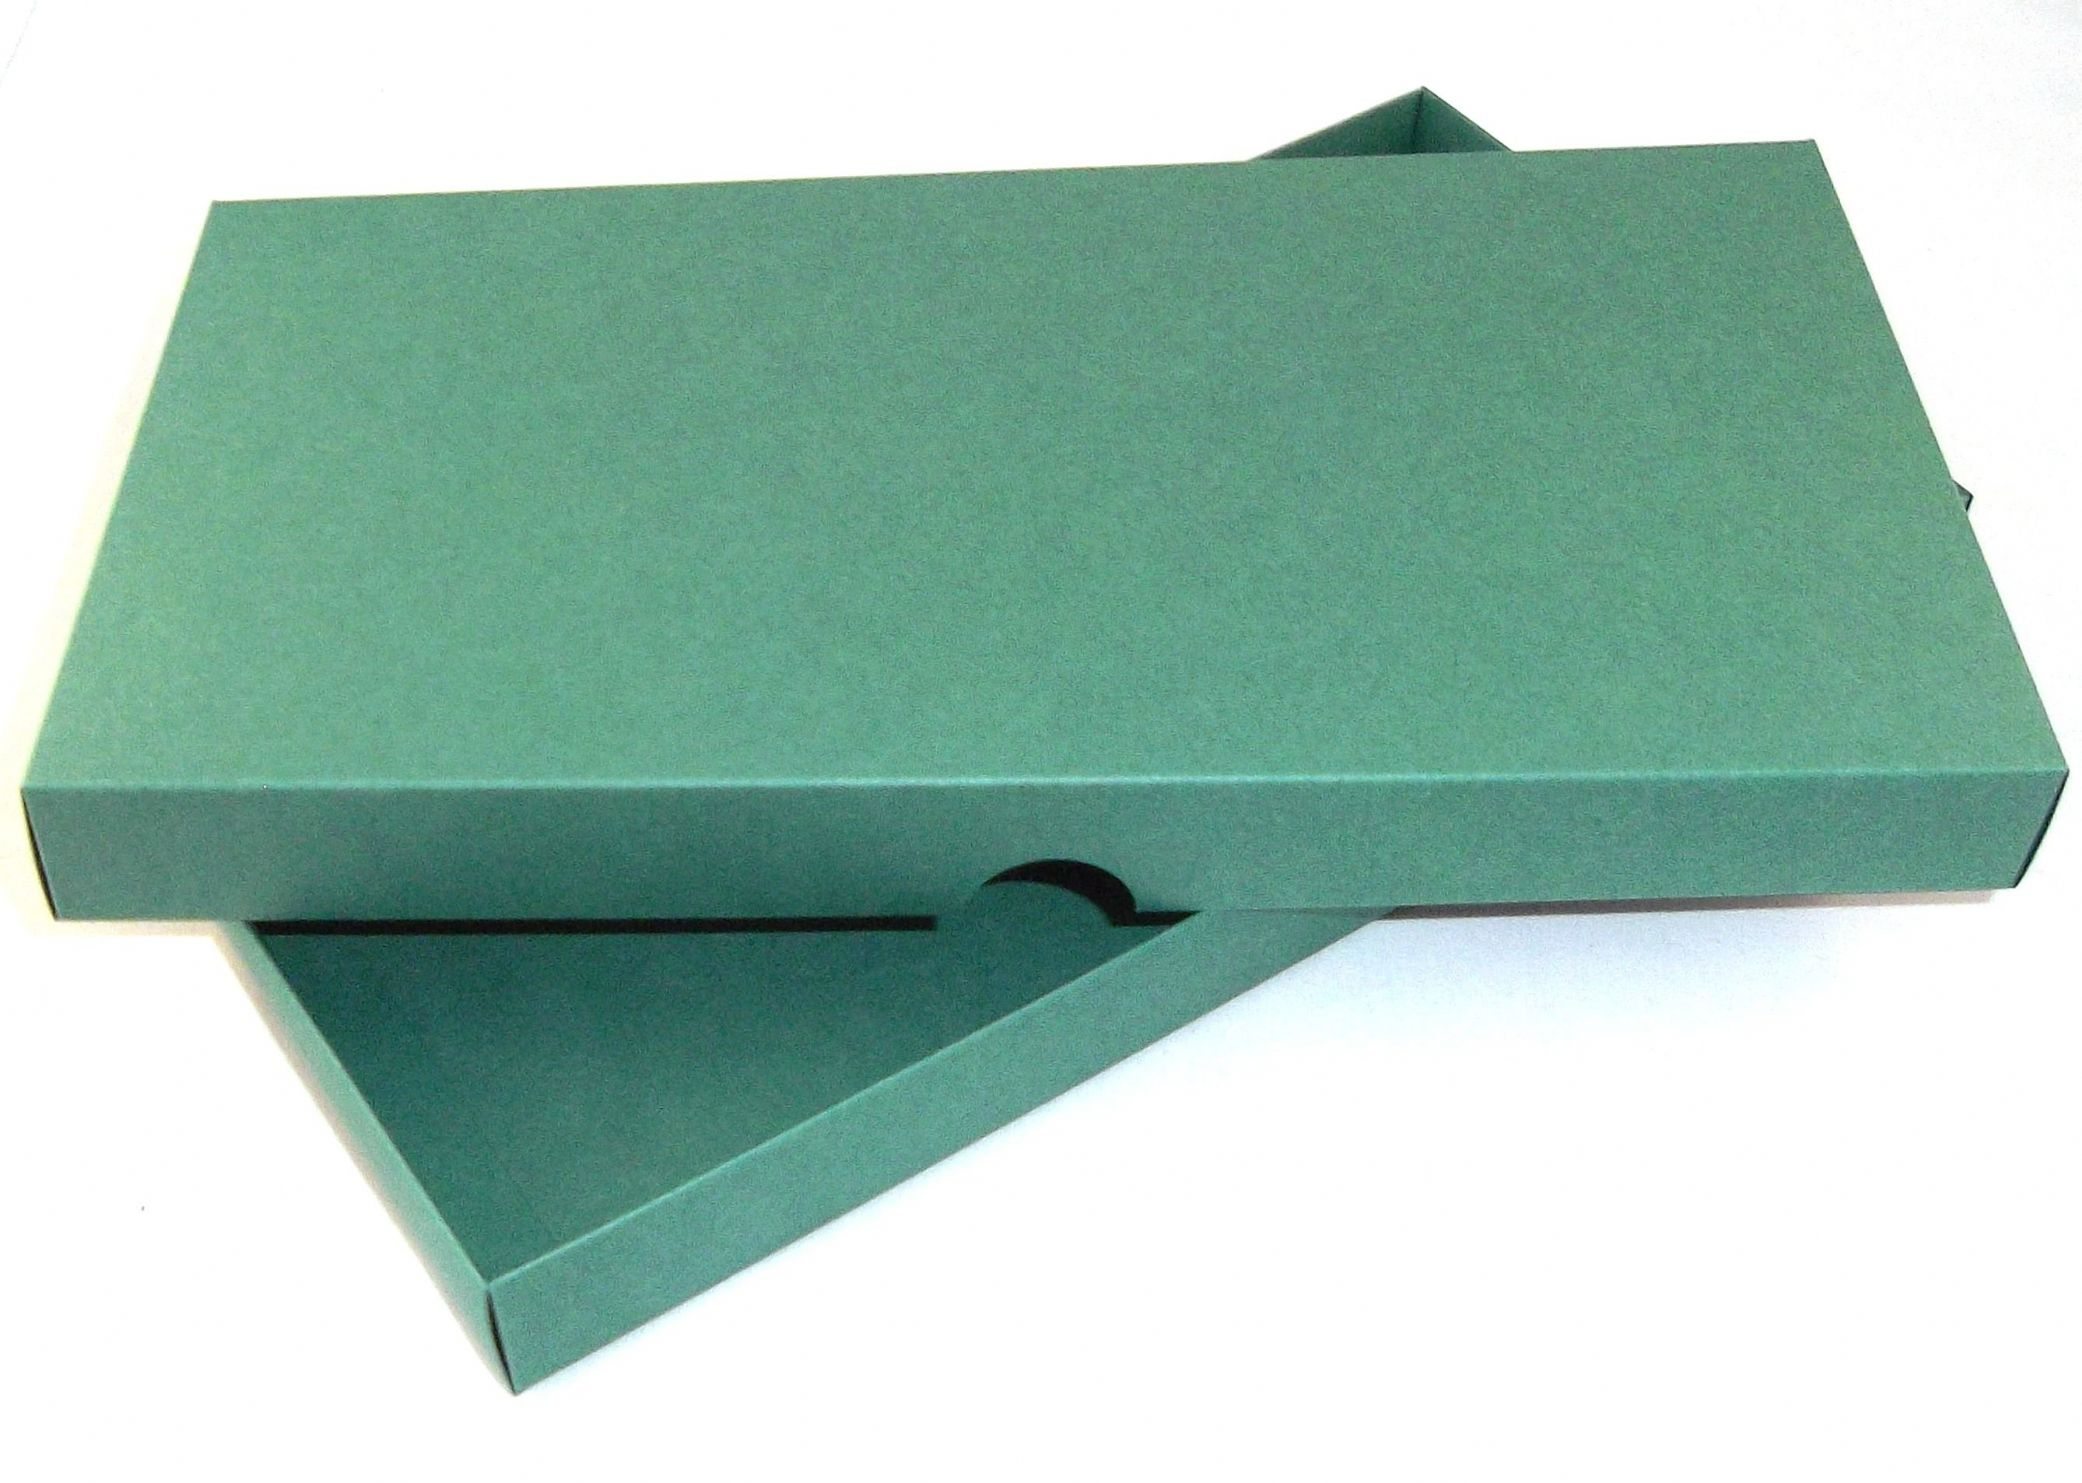 Dl Green Greeting Card Boxes For Handmade Cards